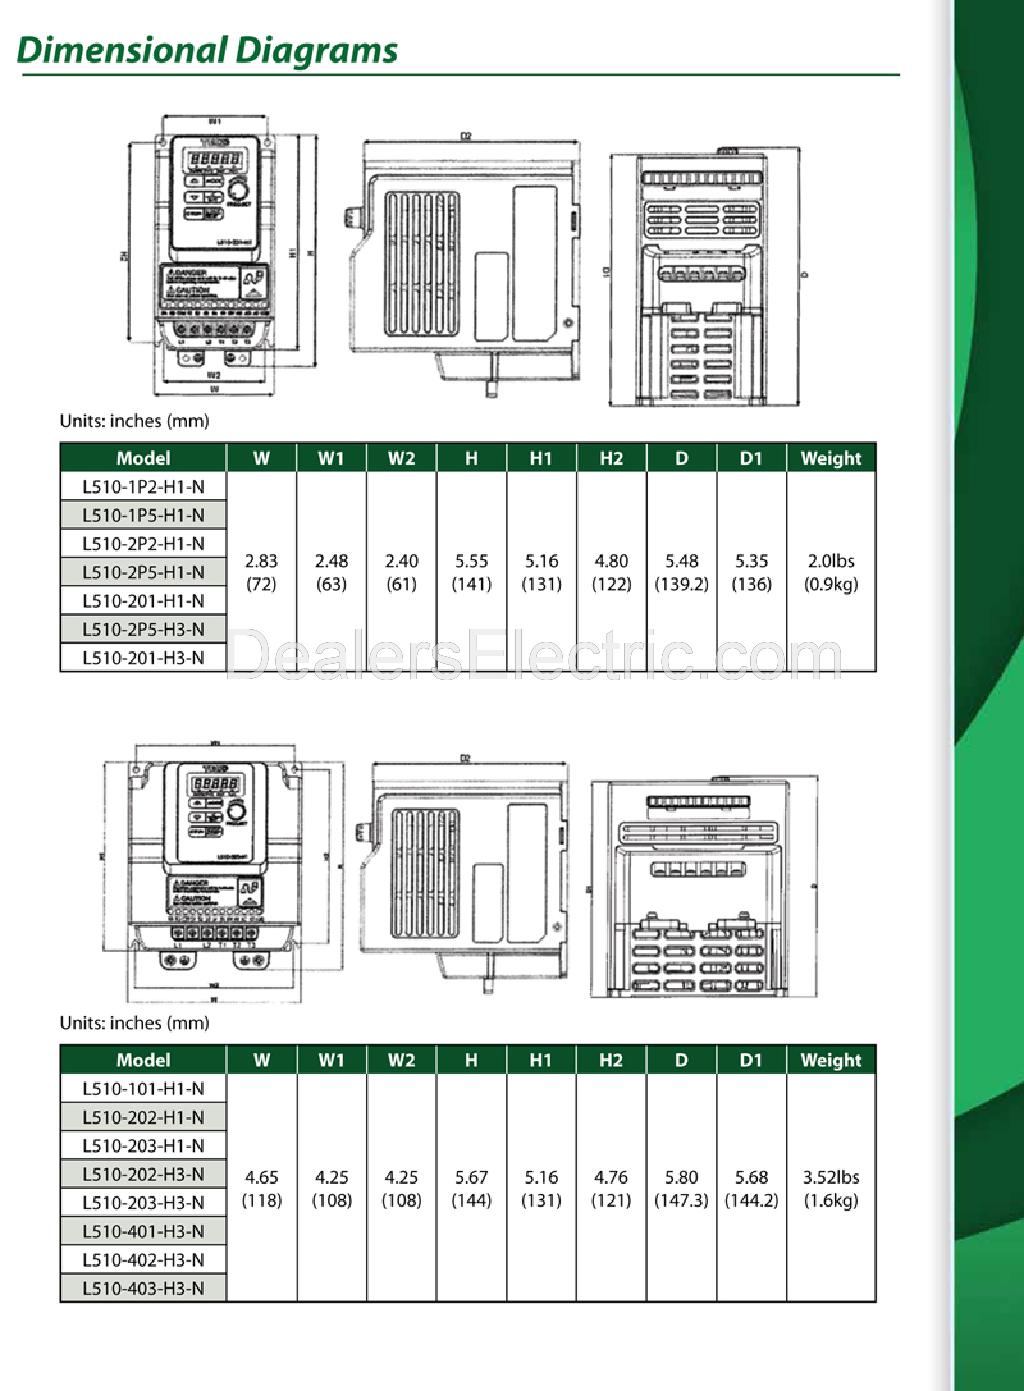 Teco Westinghouse Motor Wiring Diagram 38 Images Electric Motors L510brochure 5 L510 101 H1 1 Hp Variable Frequency Drive 115